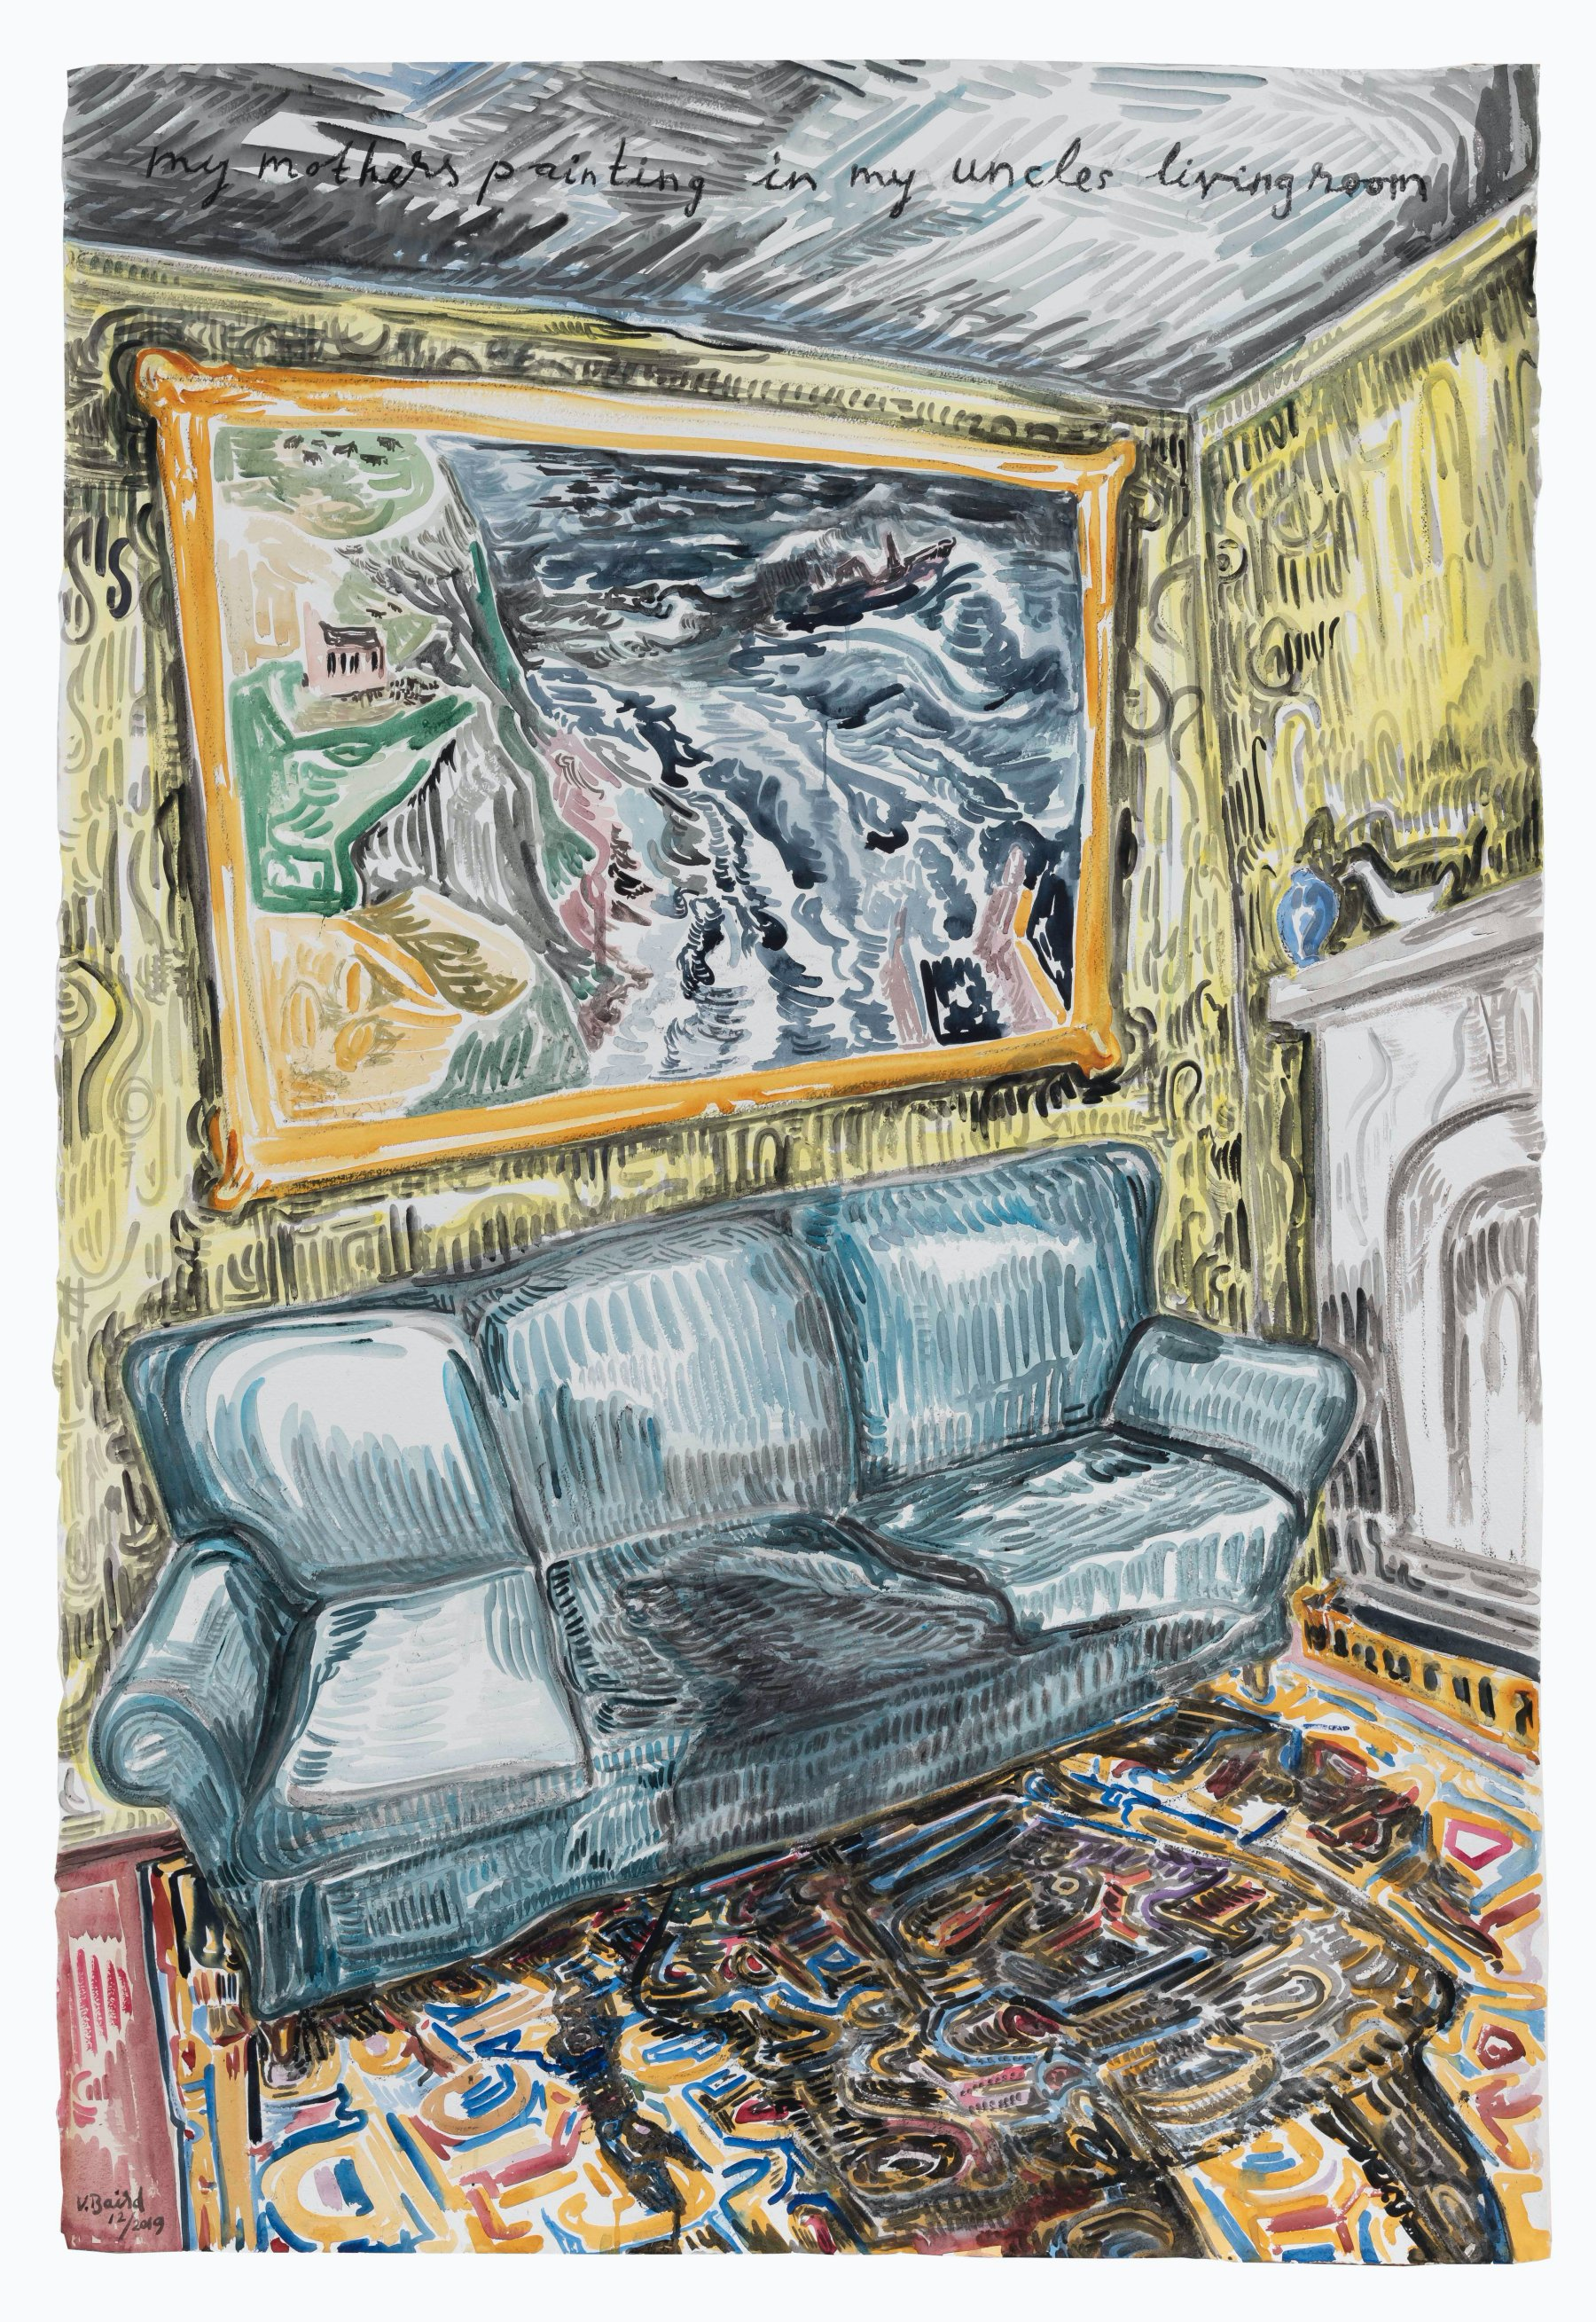 Vanessa Baird_DSC6898_Mother_s_painting_in_uncle_s_living_room